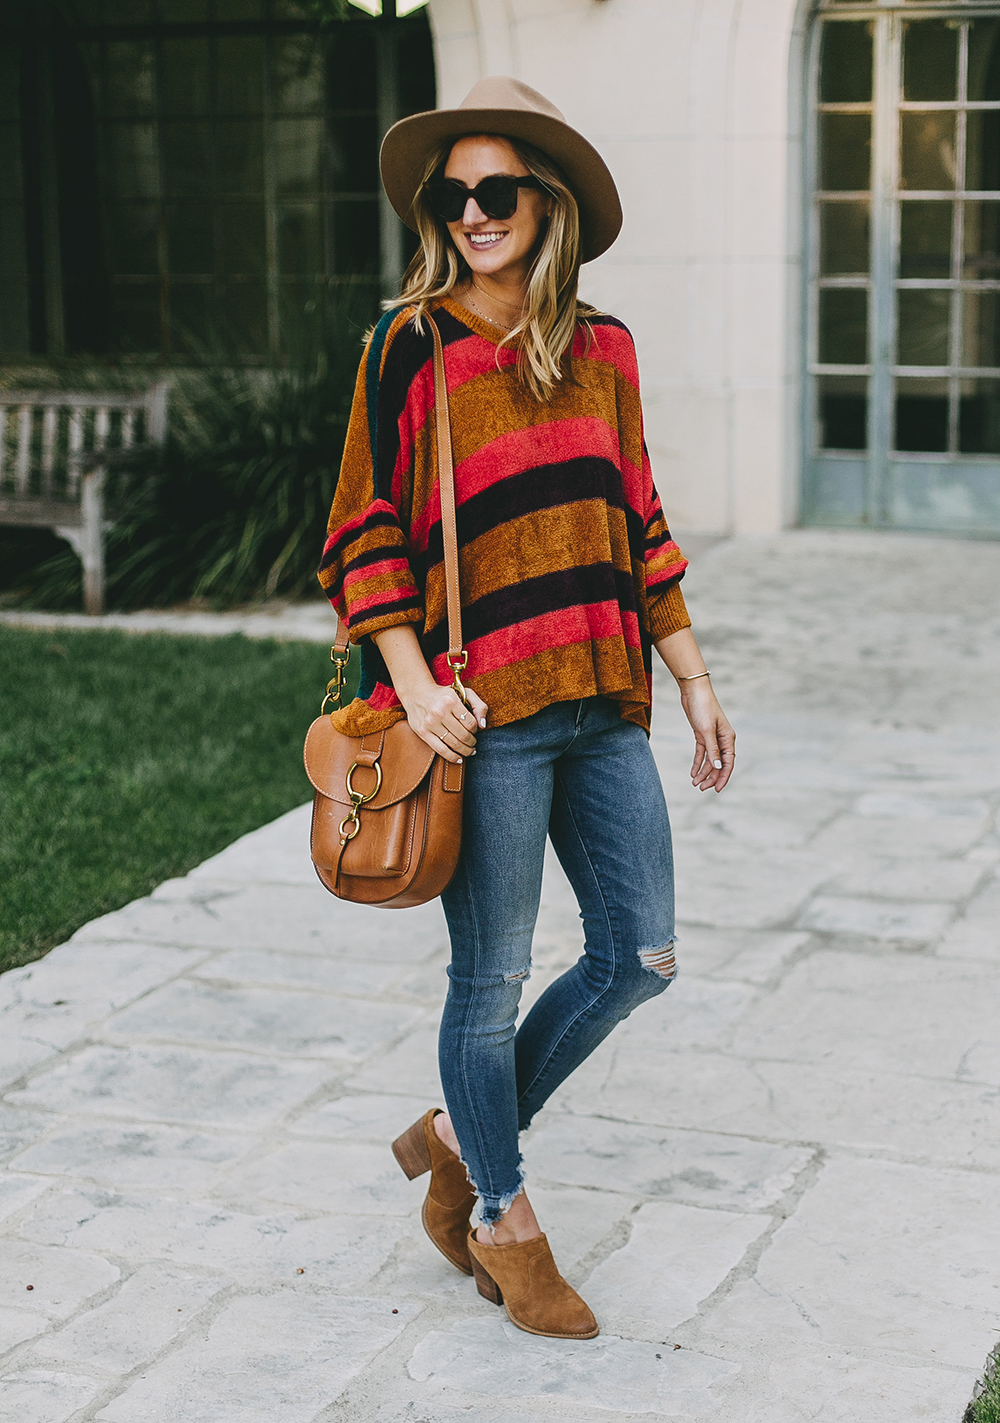 livvyland-blog-olivia-watson-austin-texas-fashion-blogger-free-people-oversize-striped-sweater-boho-chic-4